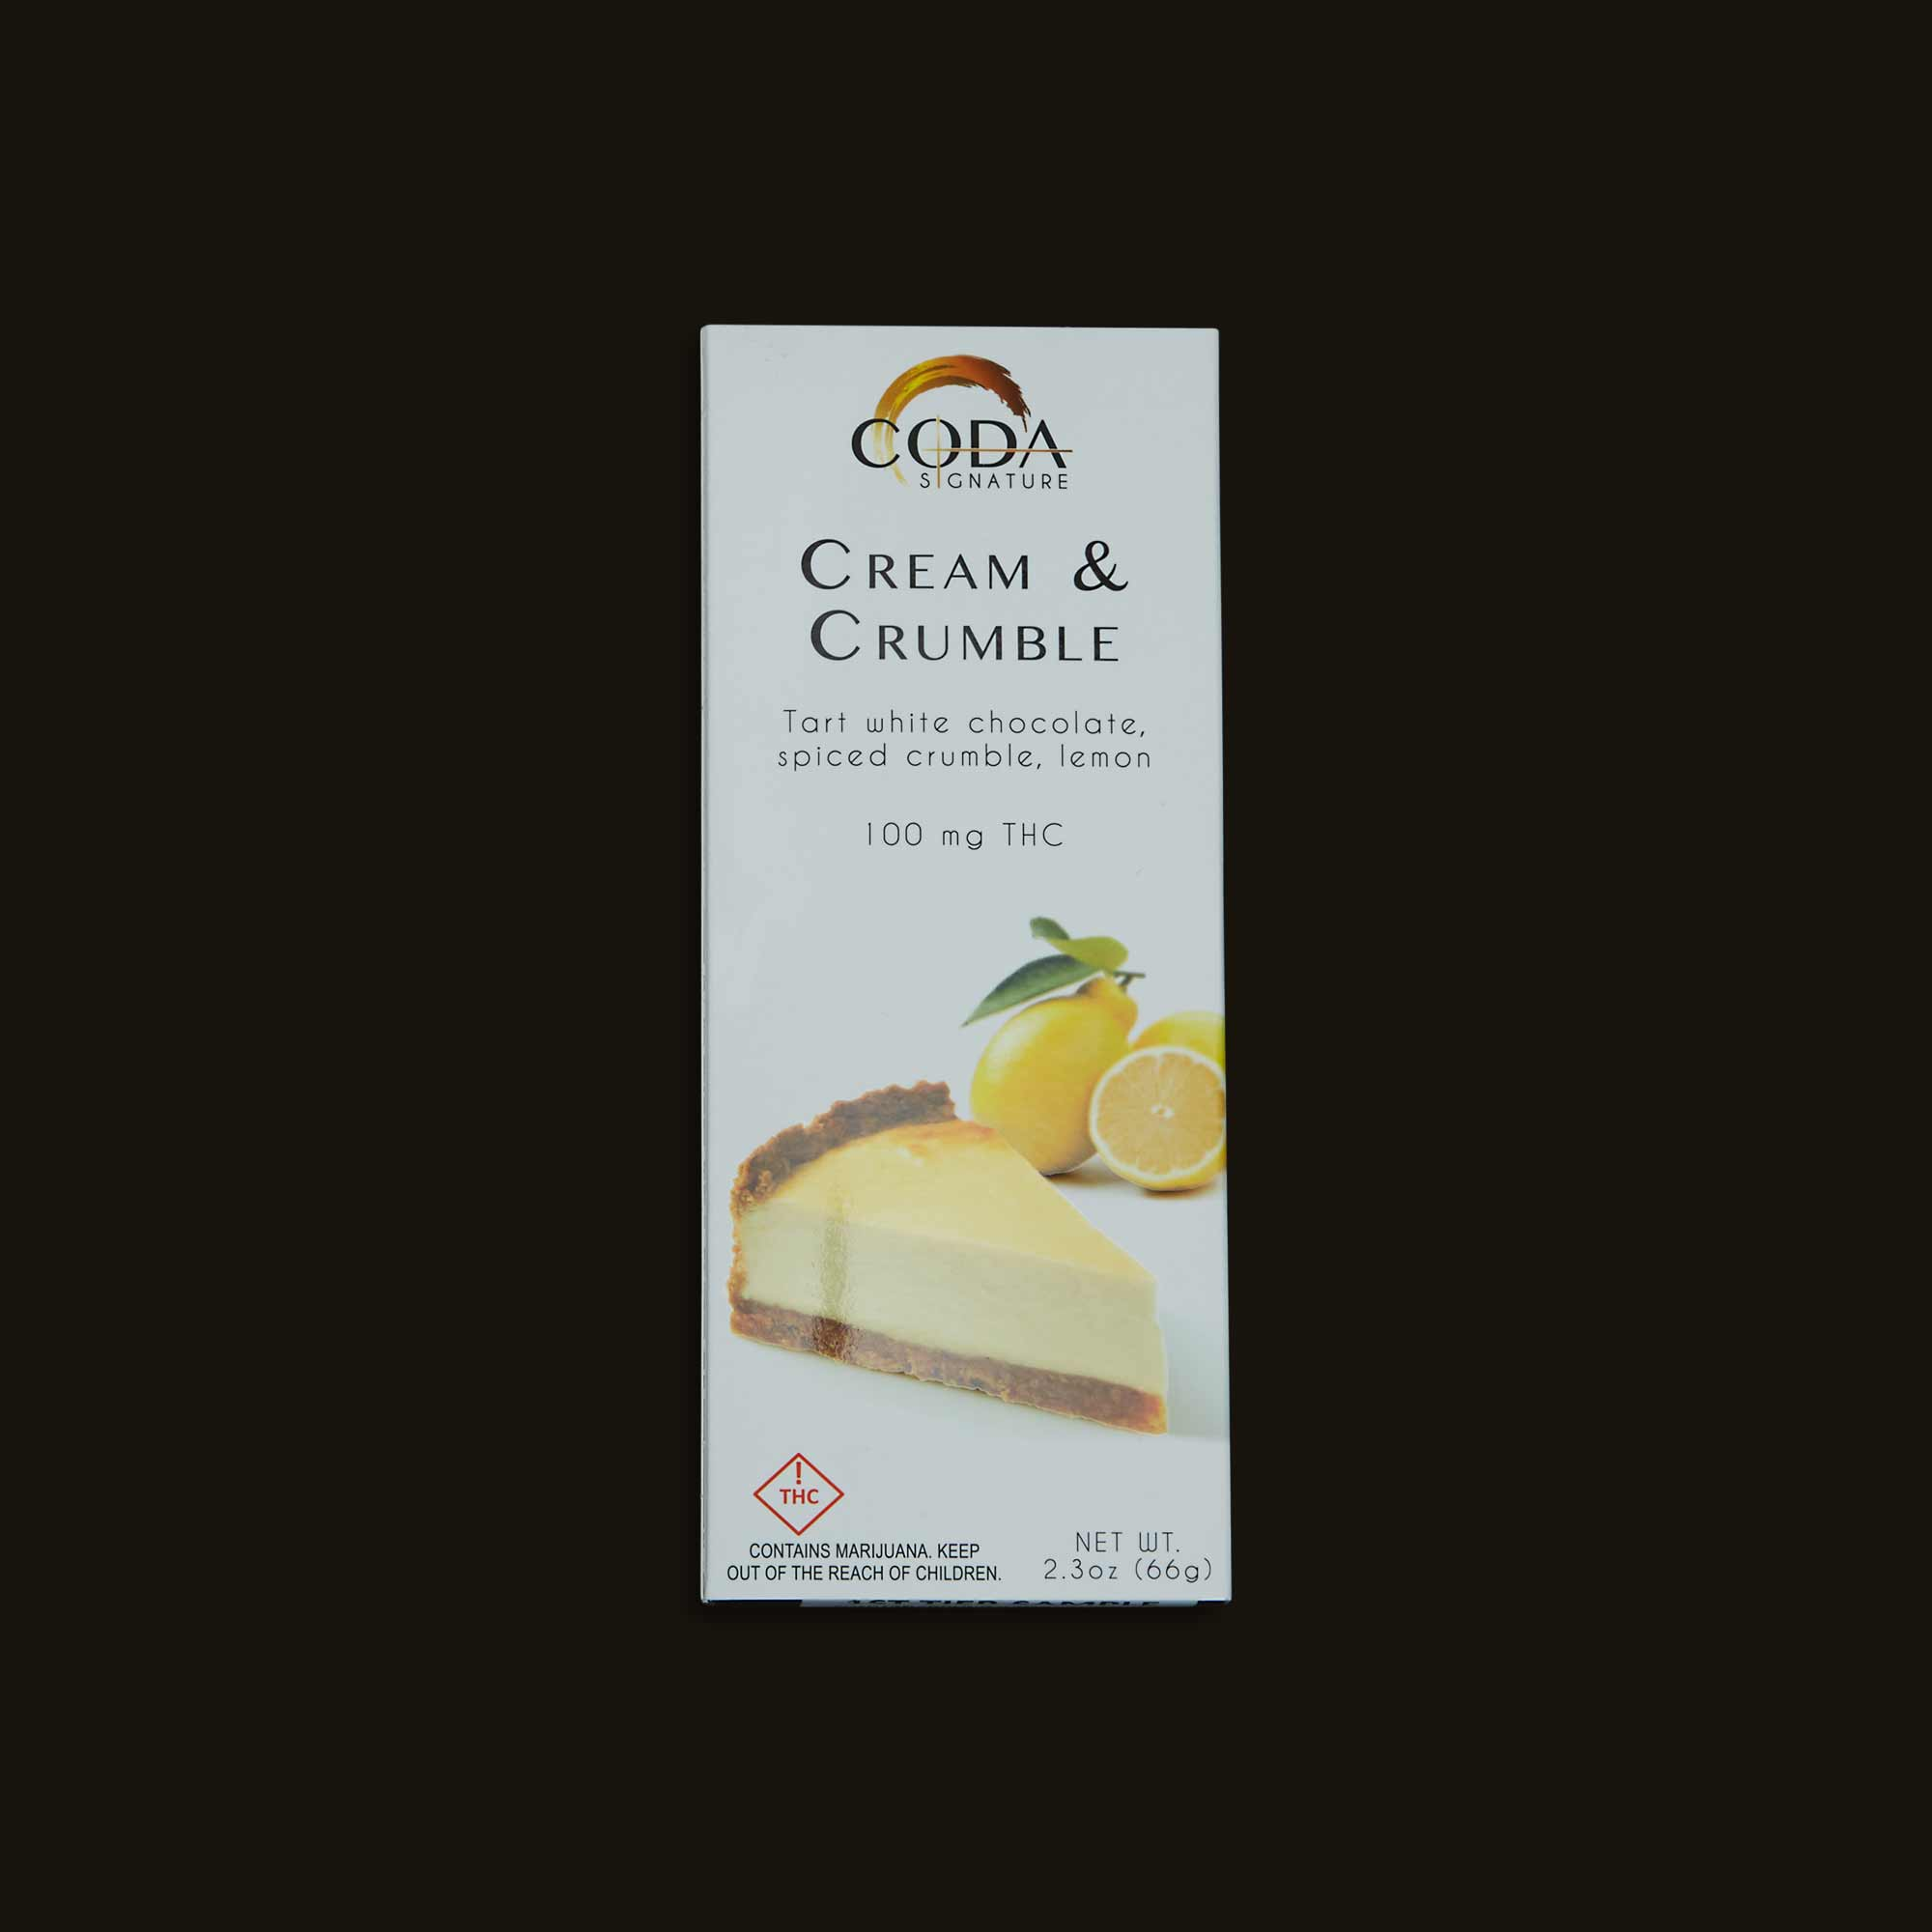 Coda Signature Cream & Crumble Chocolate Bar